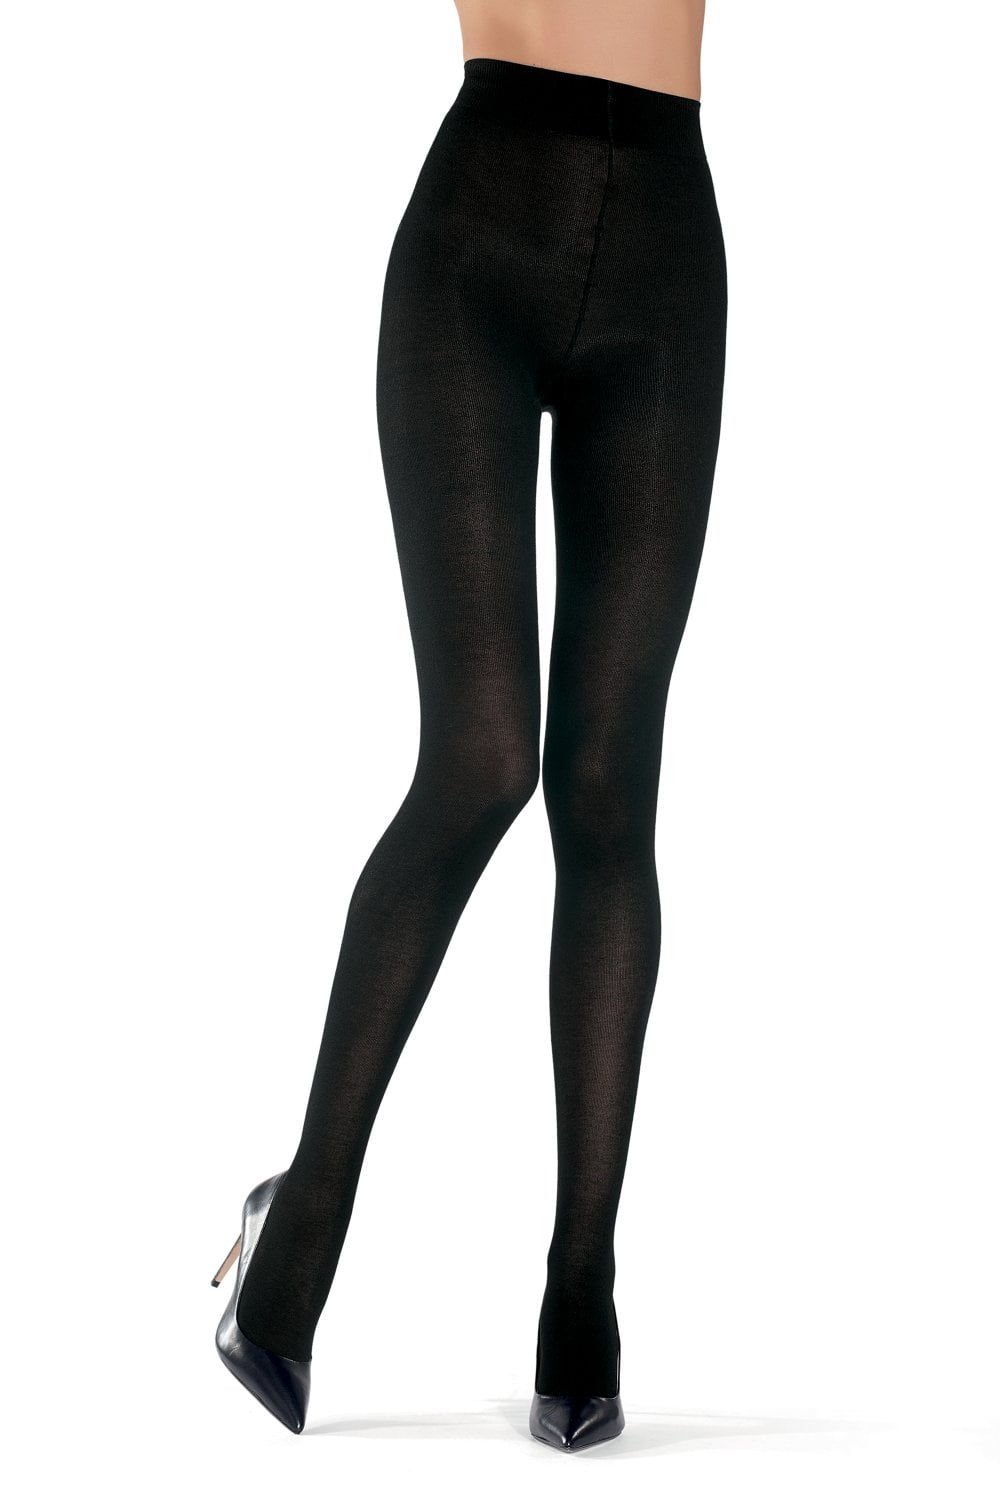 OROBLU Tights Cheryl, Fine Cashmere Blend